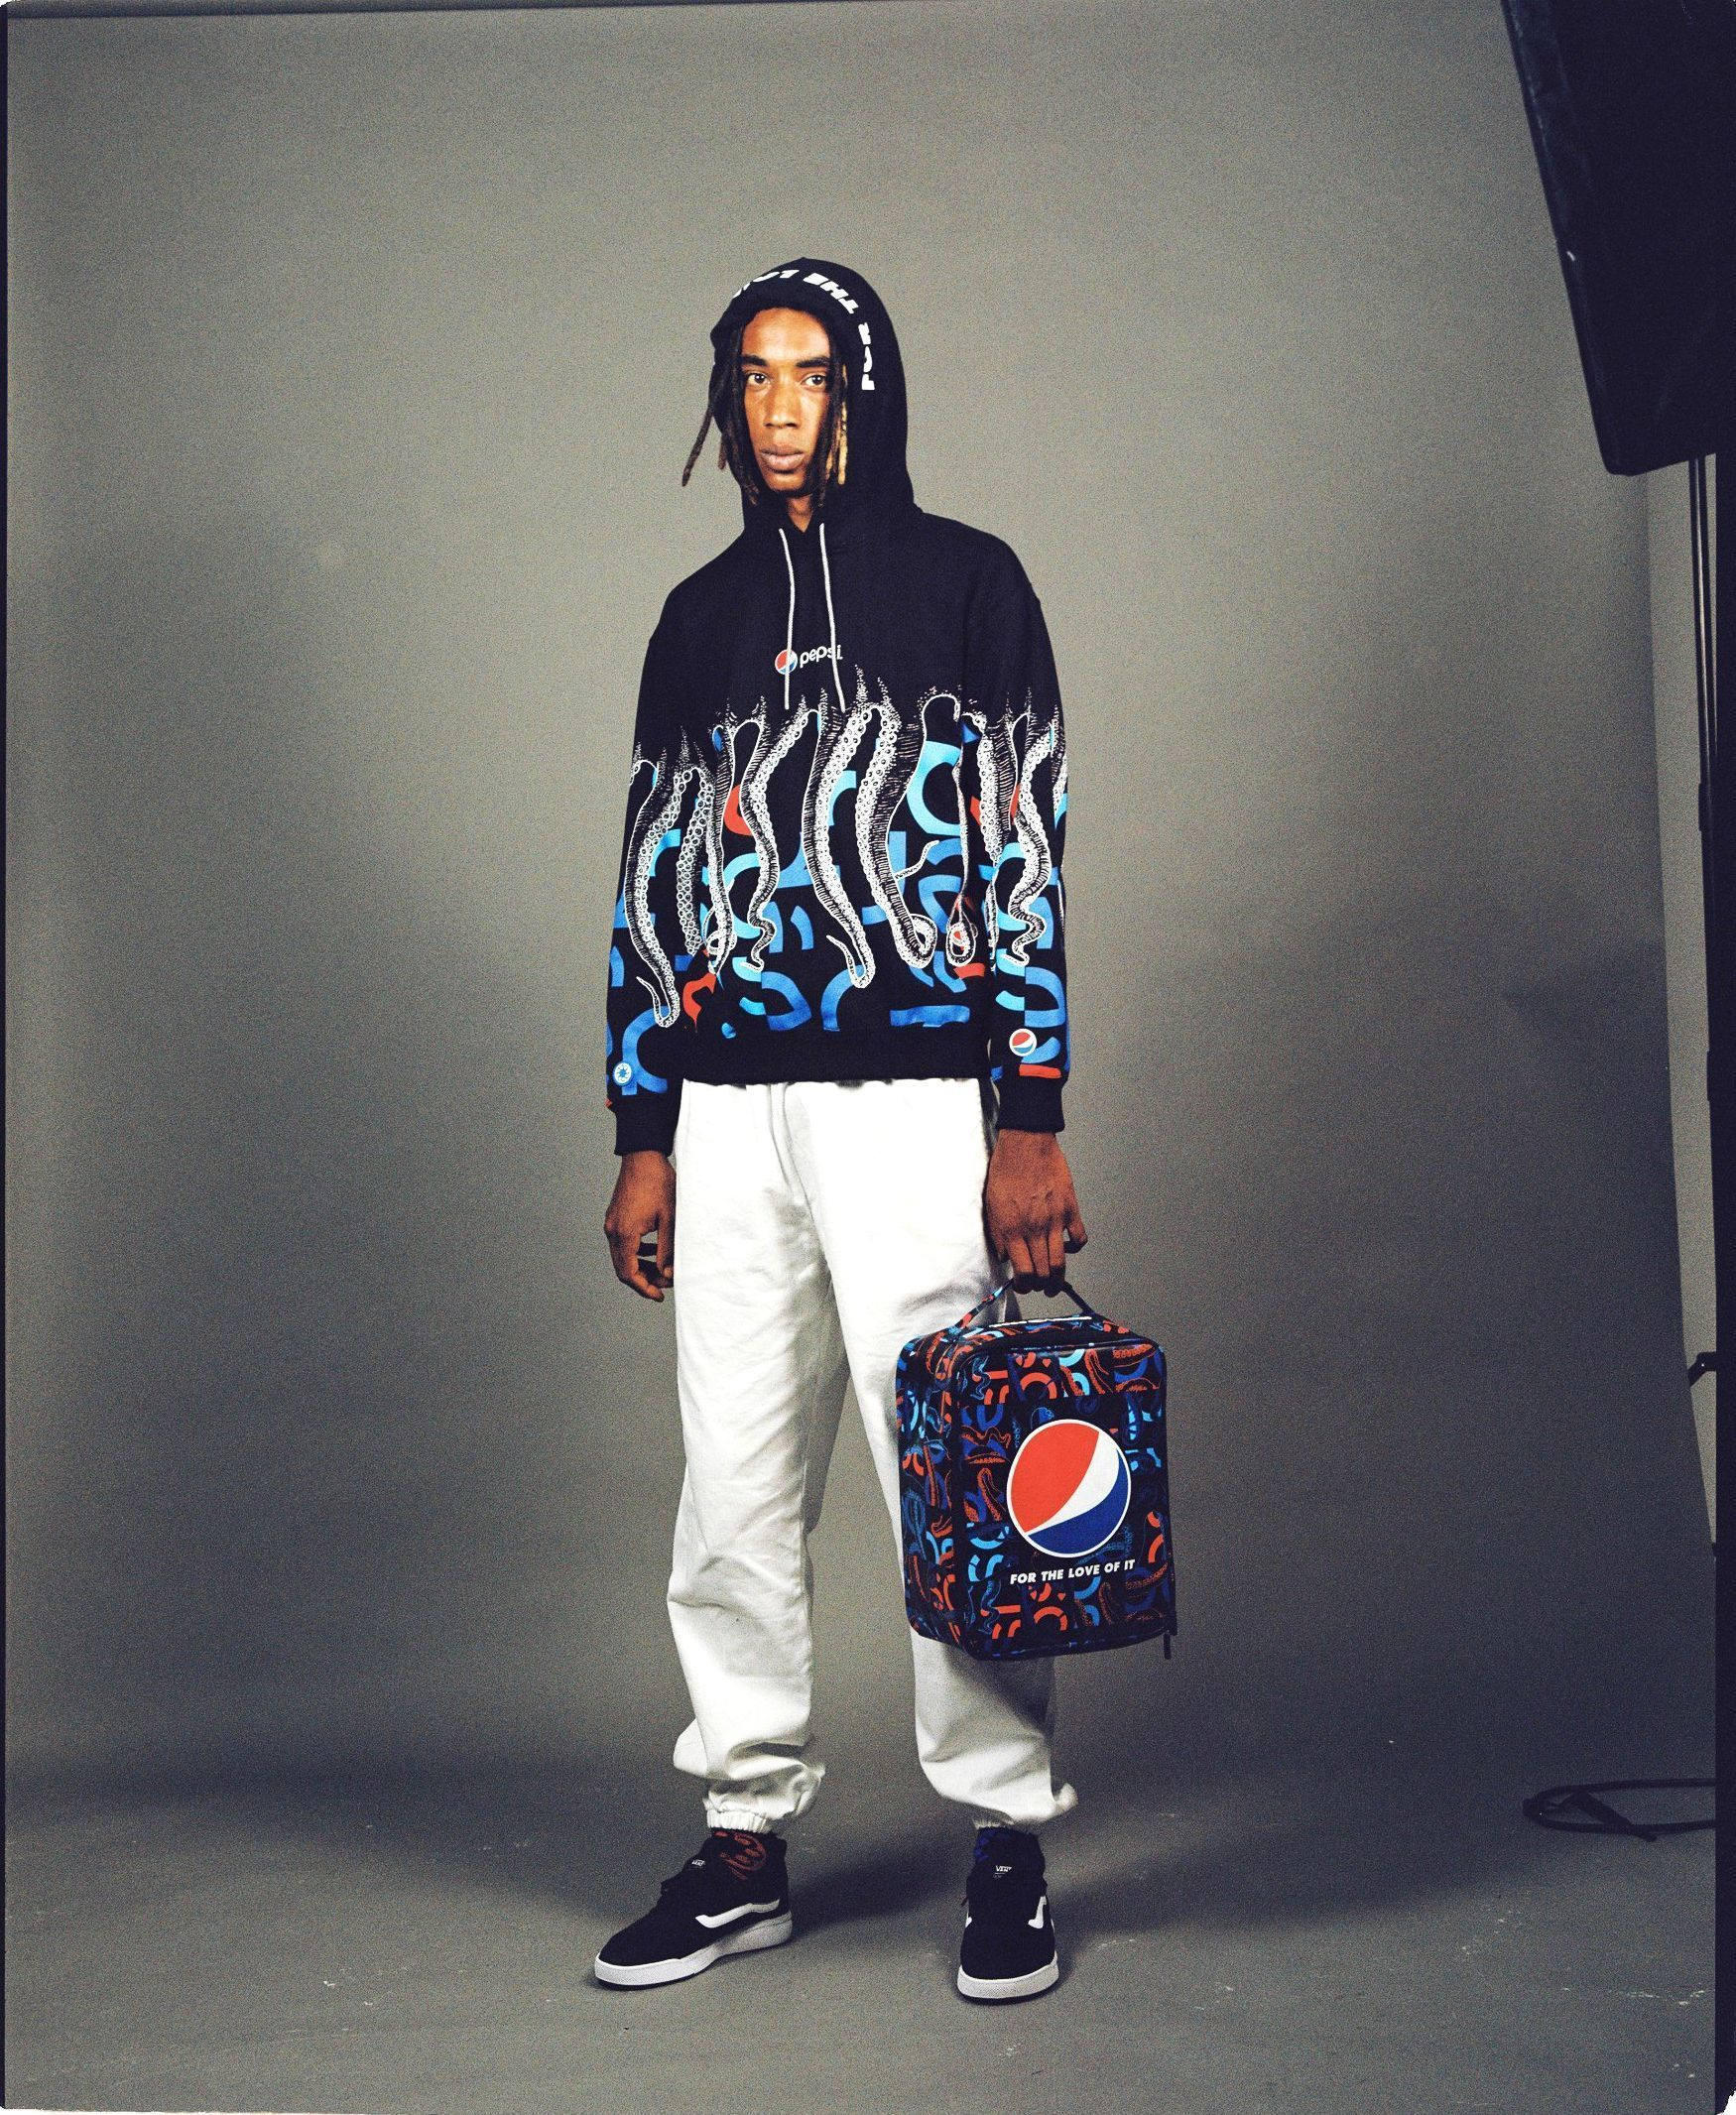 Octopus Brand x Pepsi For The Love Of It.